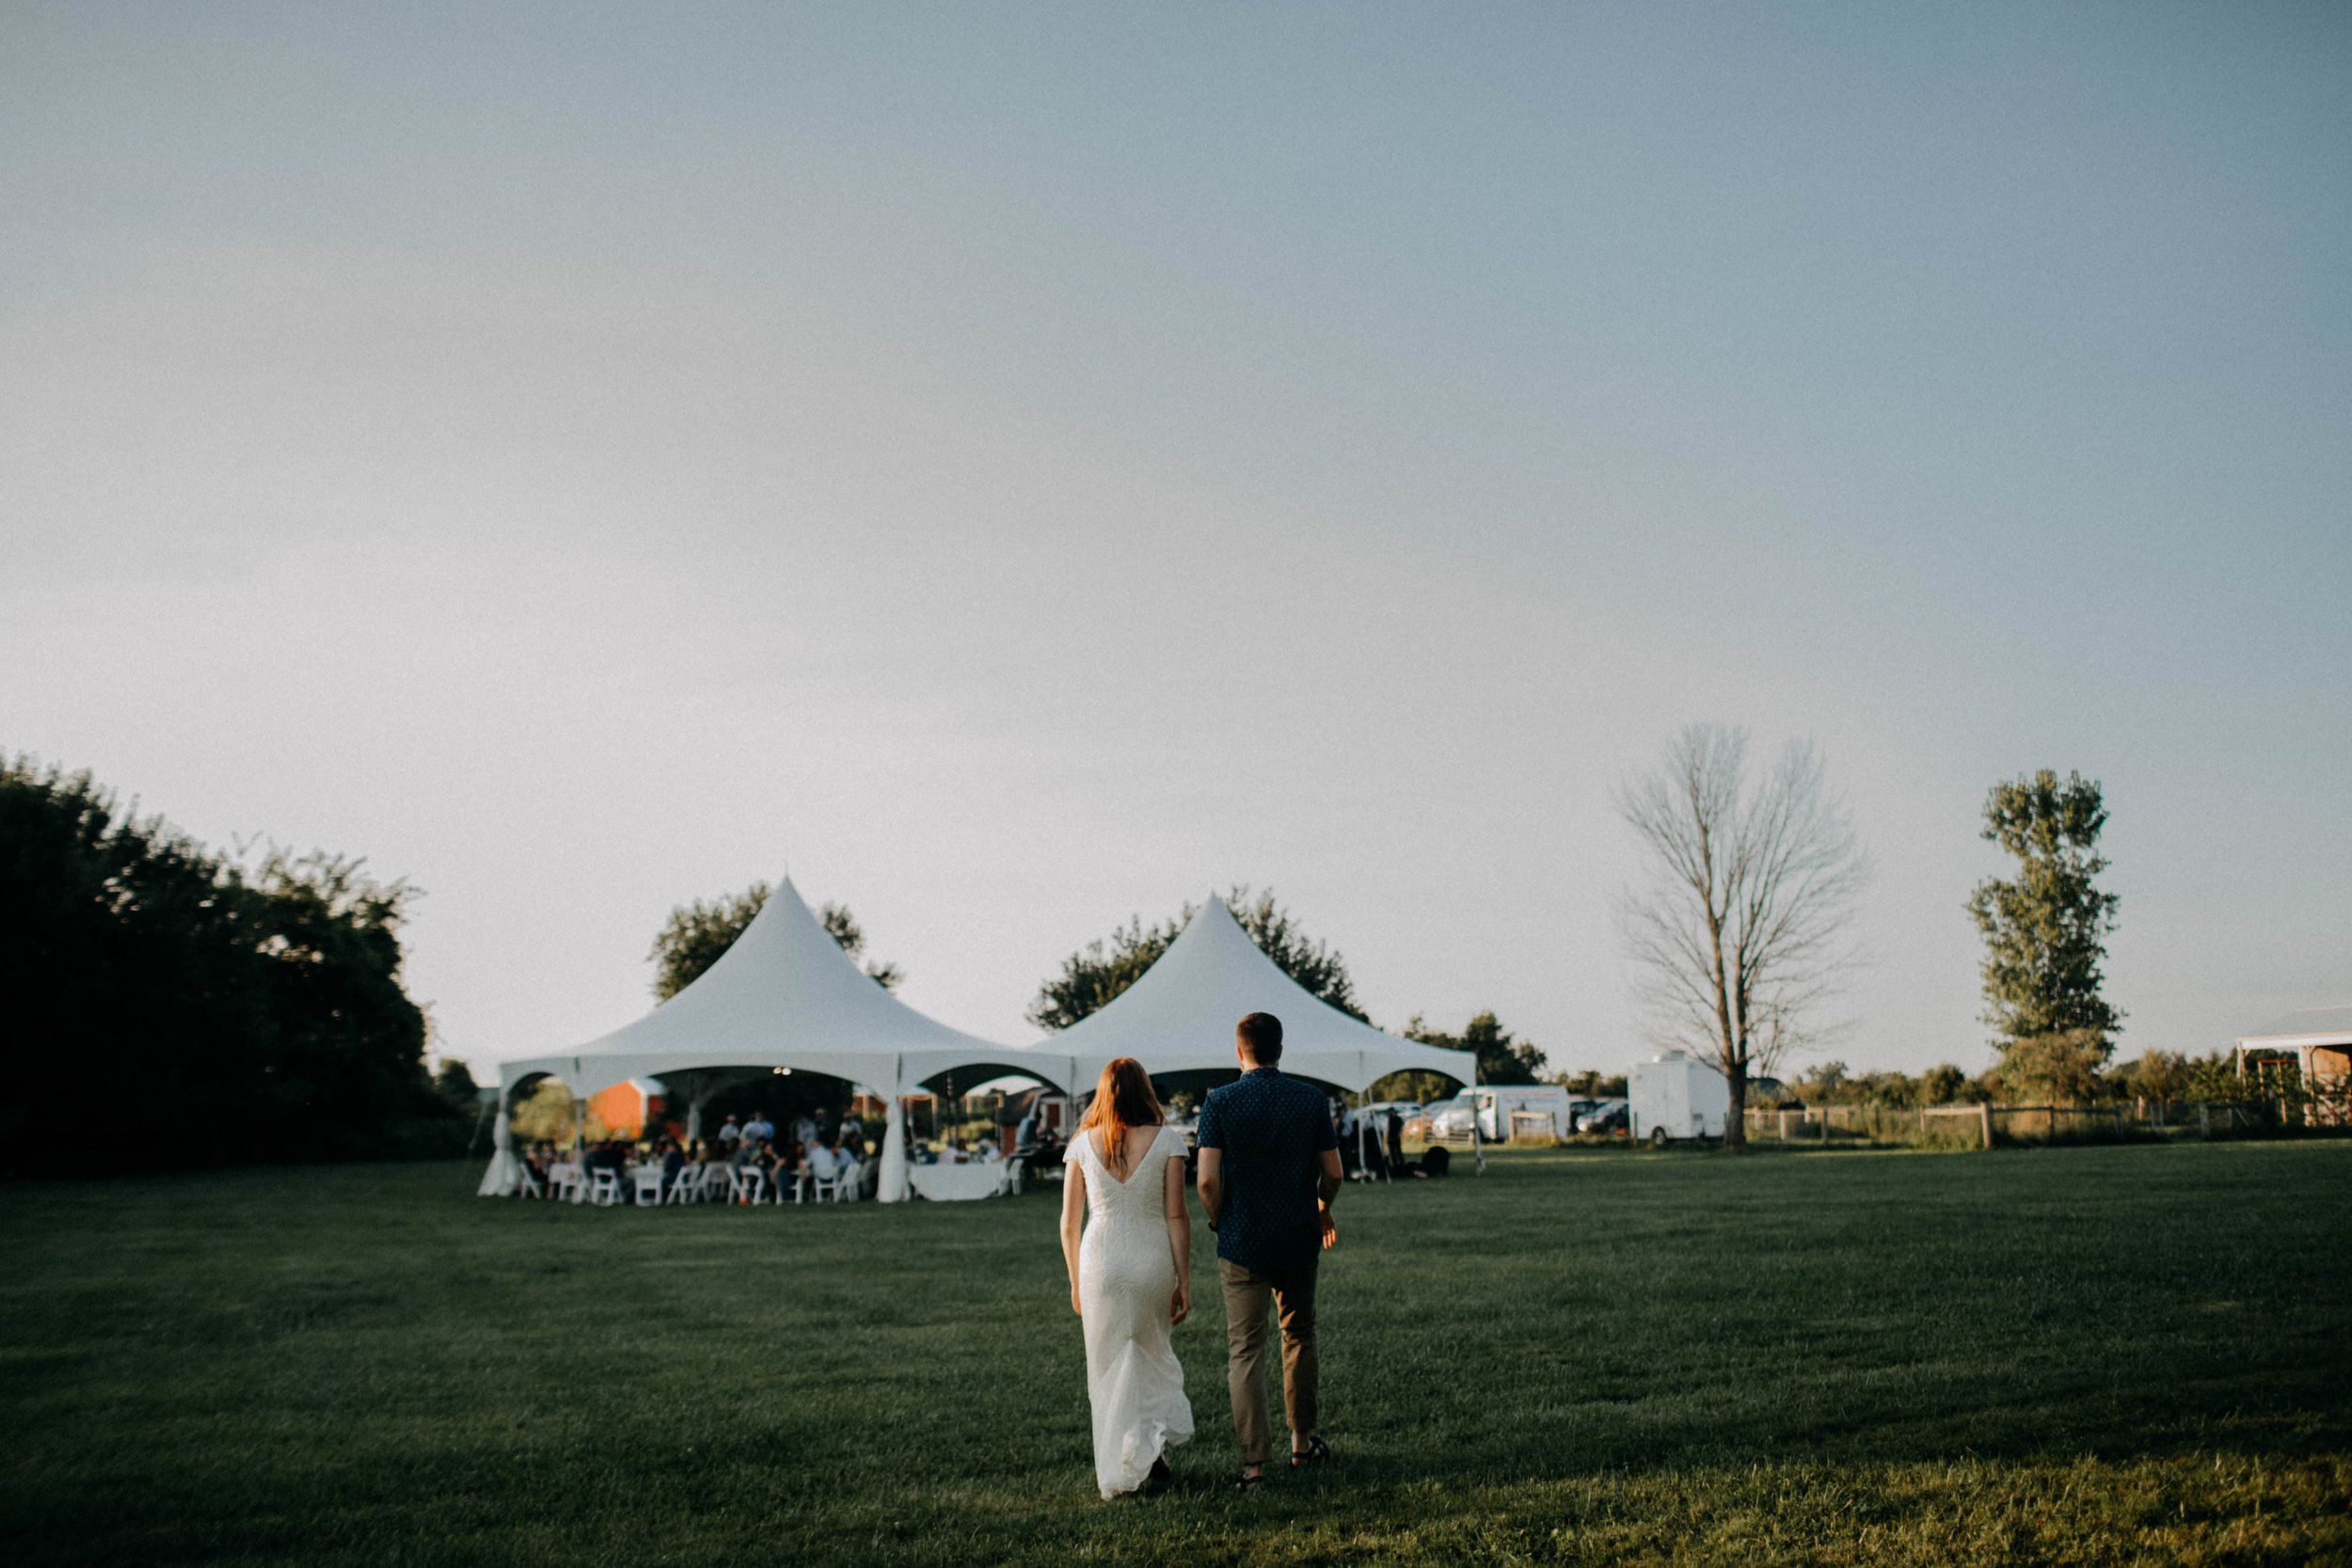 untraditional intimate bed and breakfast wedding orchard house bed and breakfast wedding granville ohio211.jpg